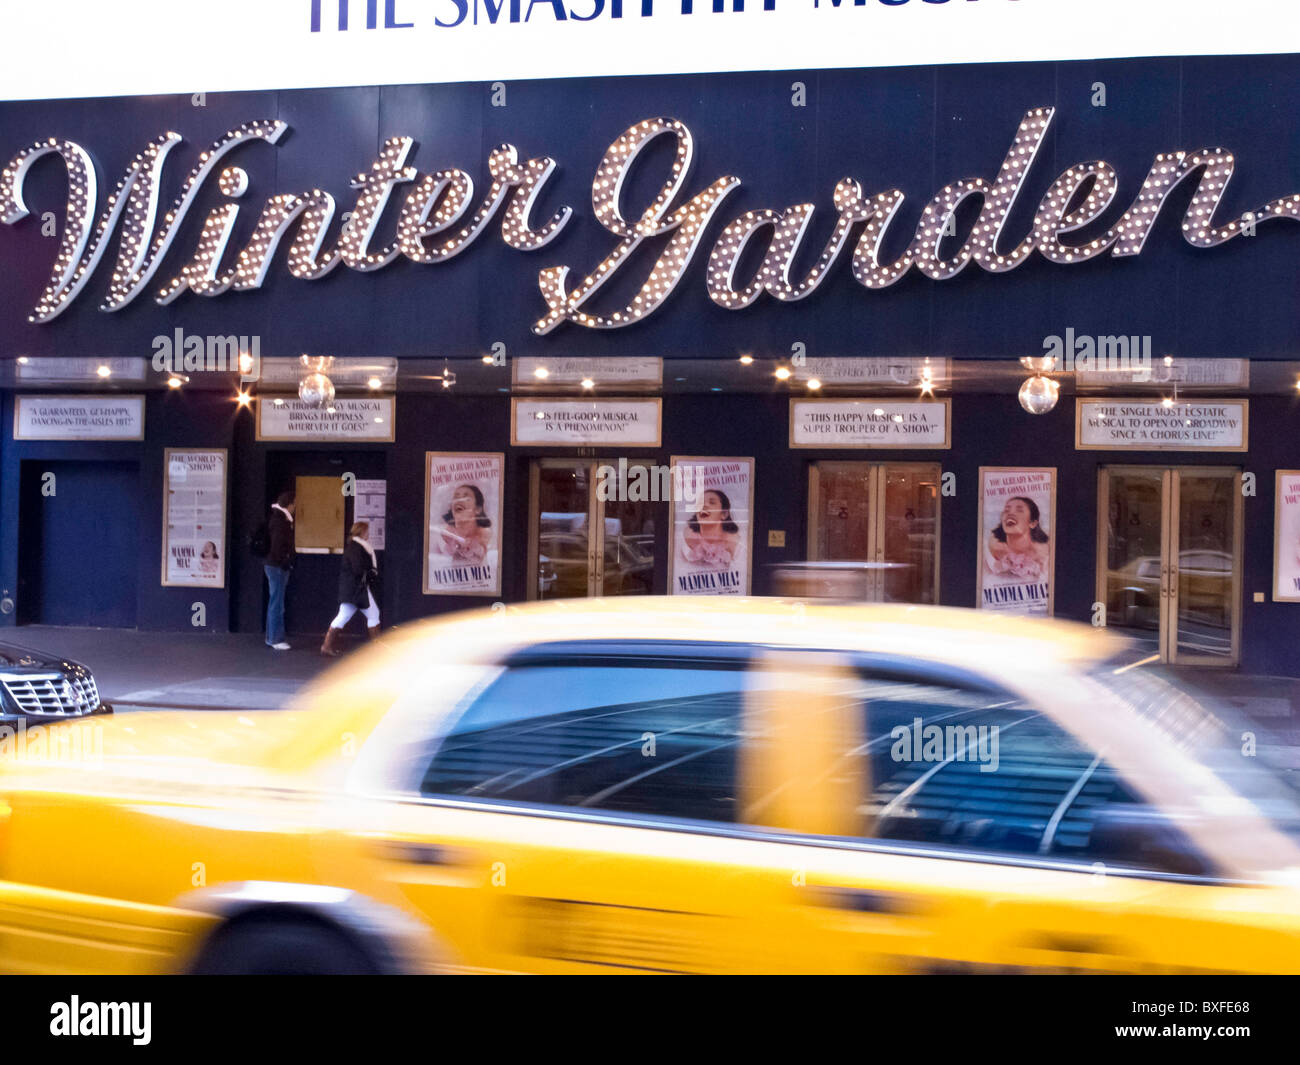 winter garden theater nyc stock photo royalty free image